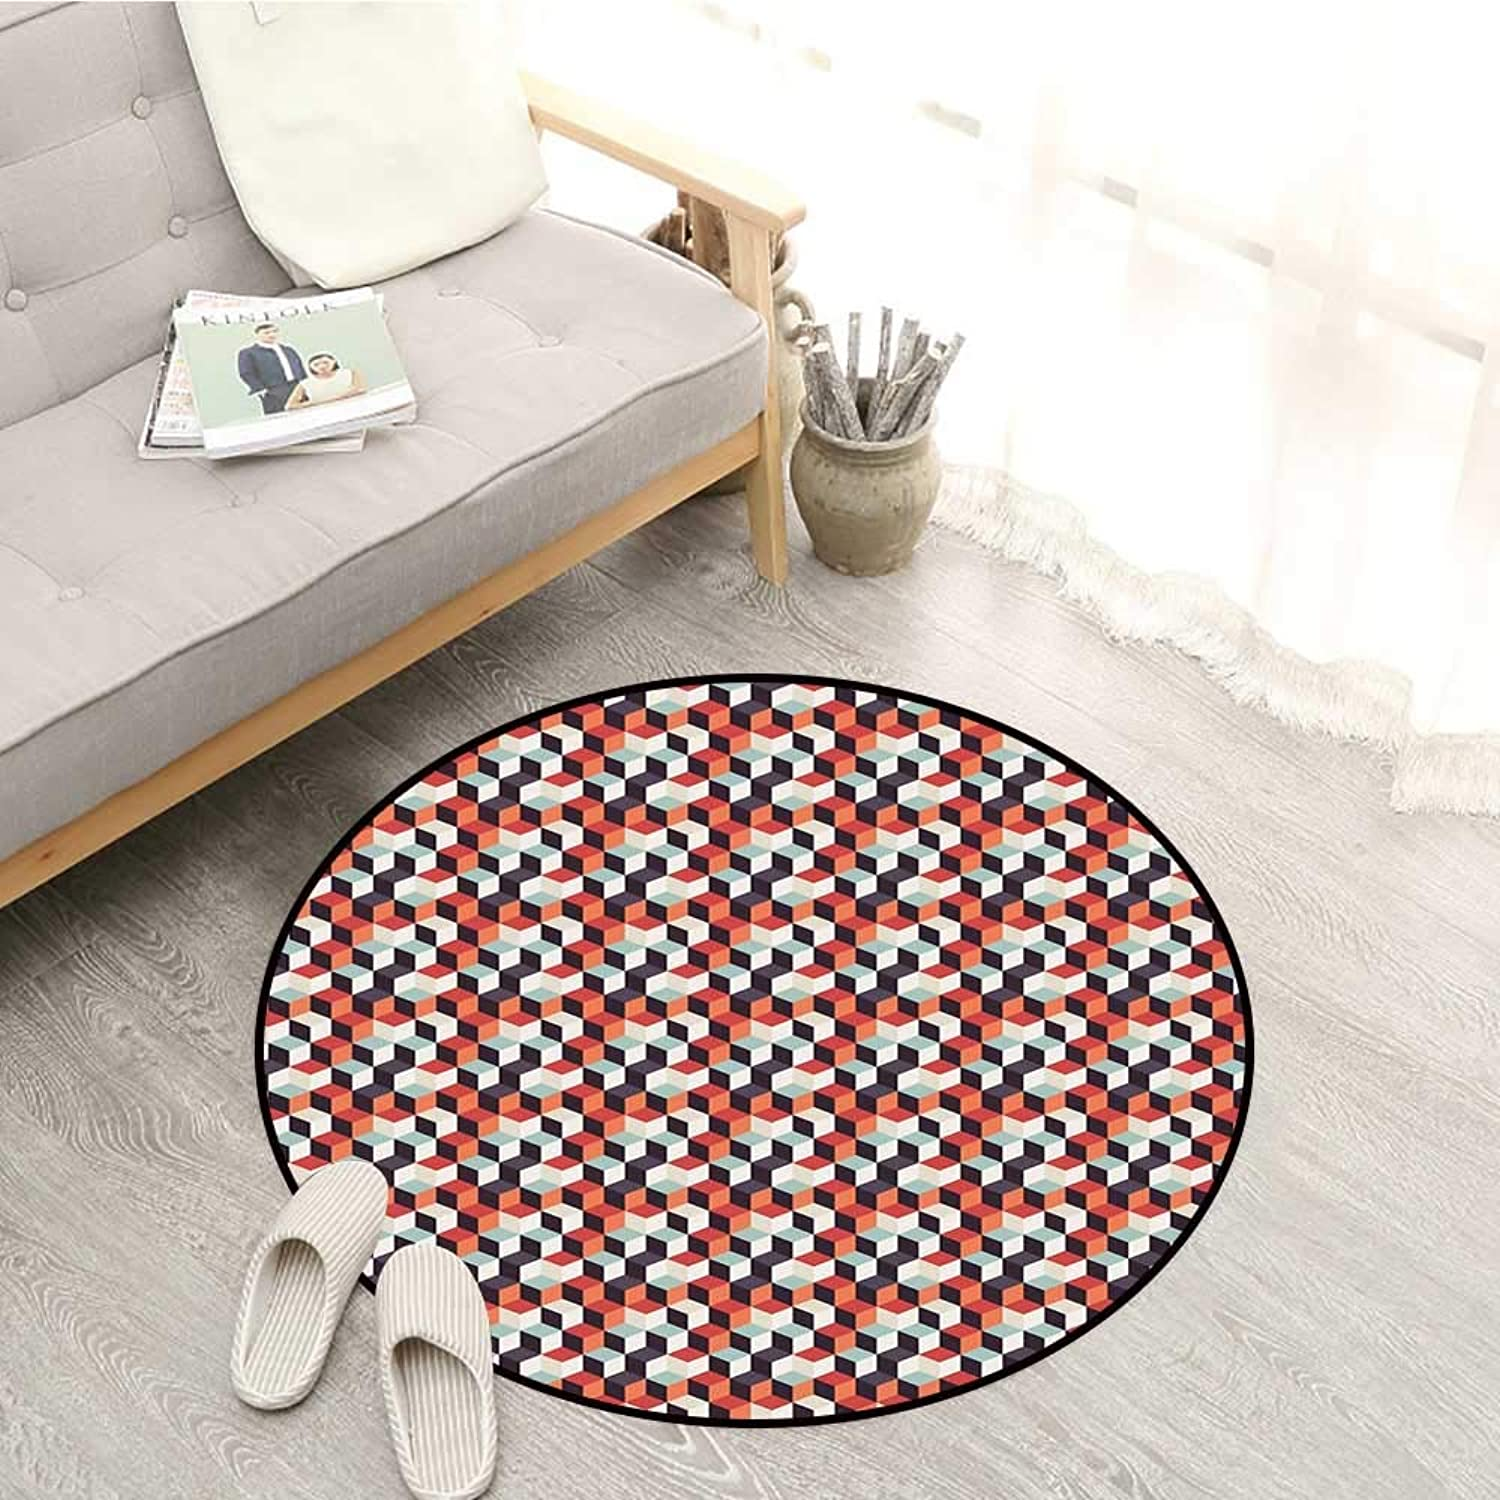 Geometric Carpets Retro Cubes Flat Artsy Boxes in Corners Squares Abstract Design Sofa Coffee Table Mat 4'11  Multicolor